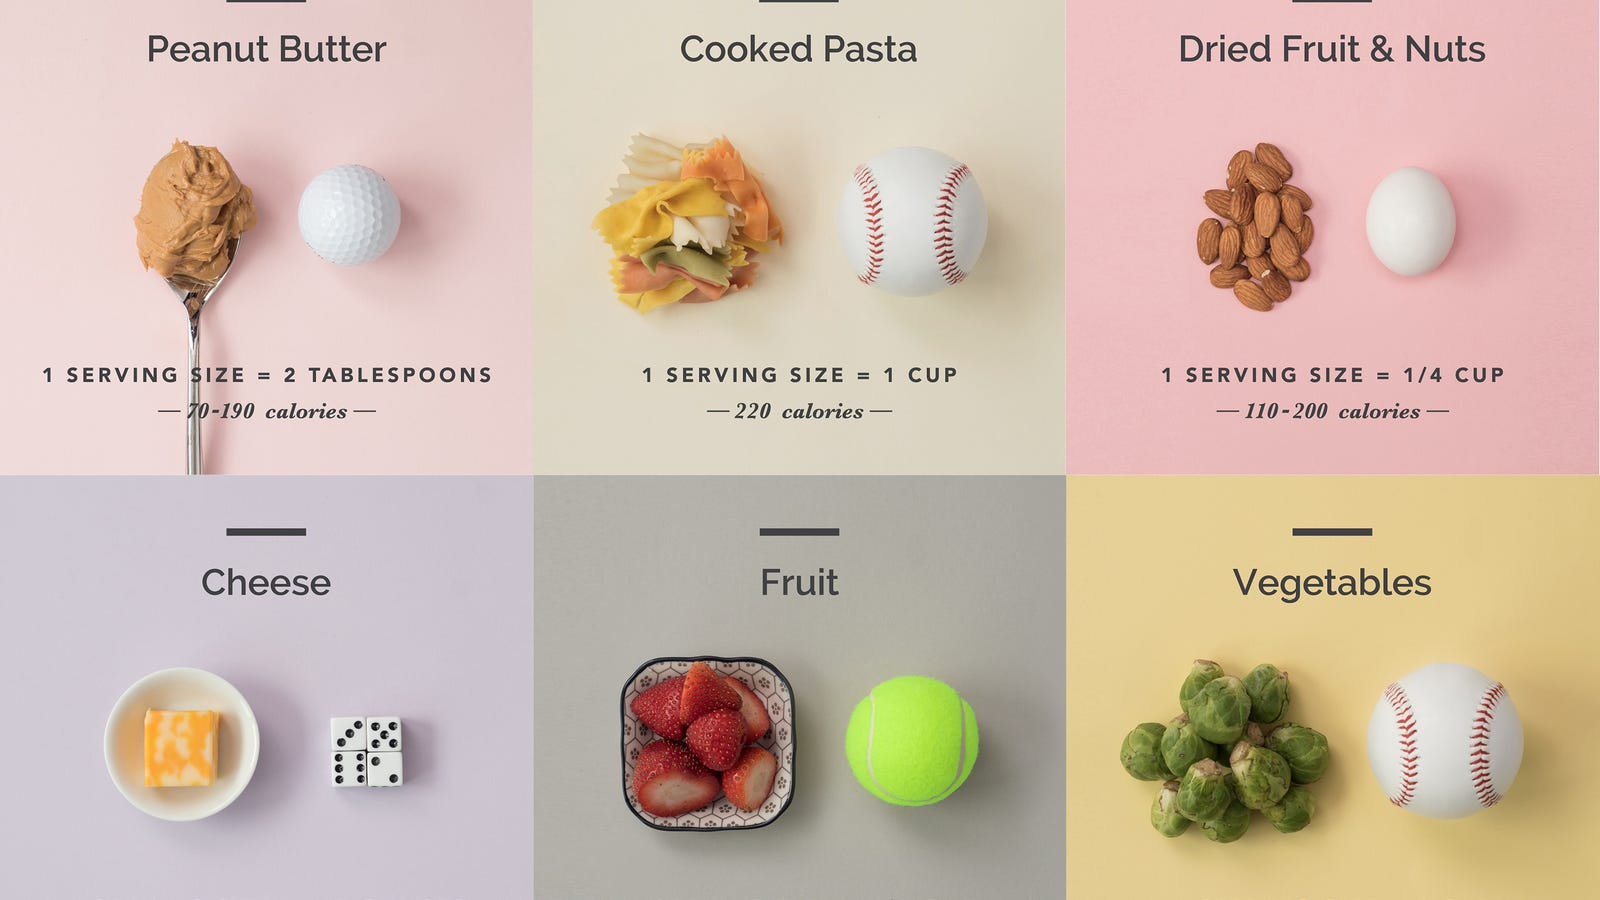 Lose It! Has a Built-In Visual Guide to Help You Figure Out Serving Sizes